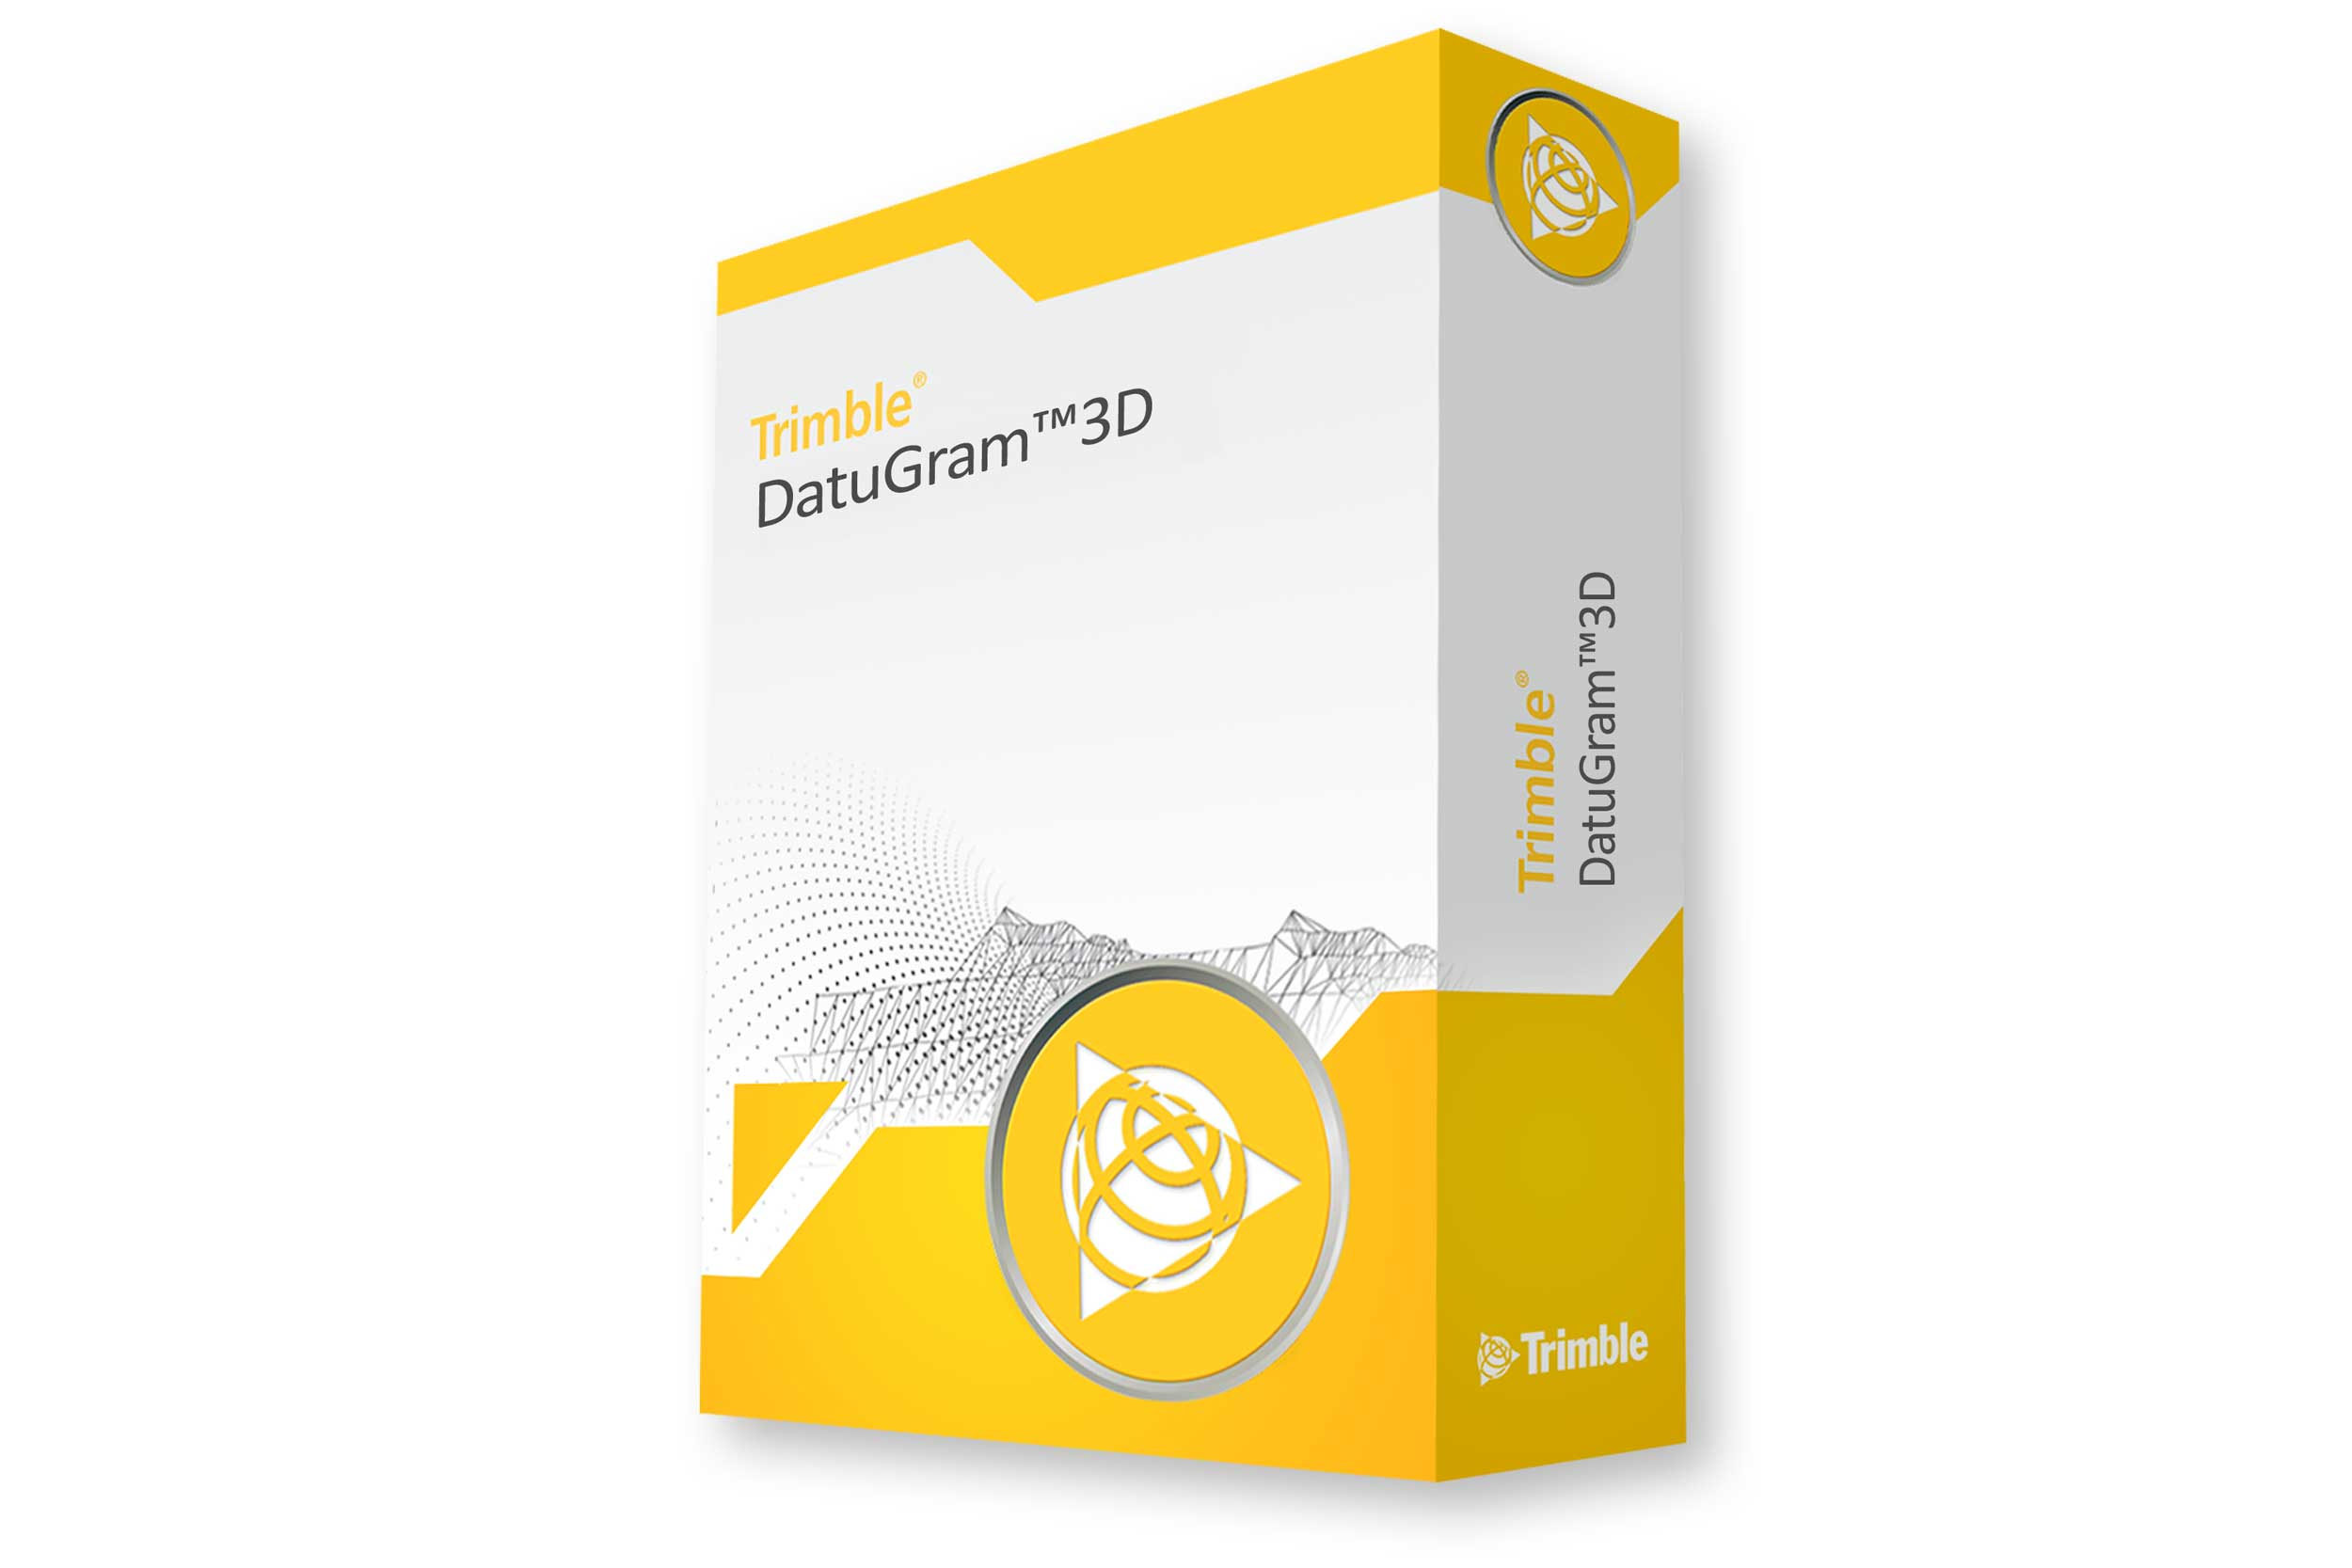 Bürosoftware Trimble Datugram 3D